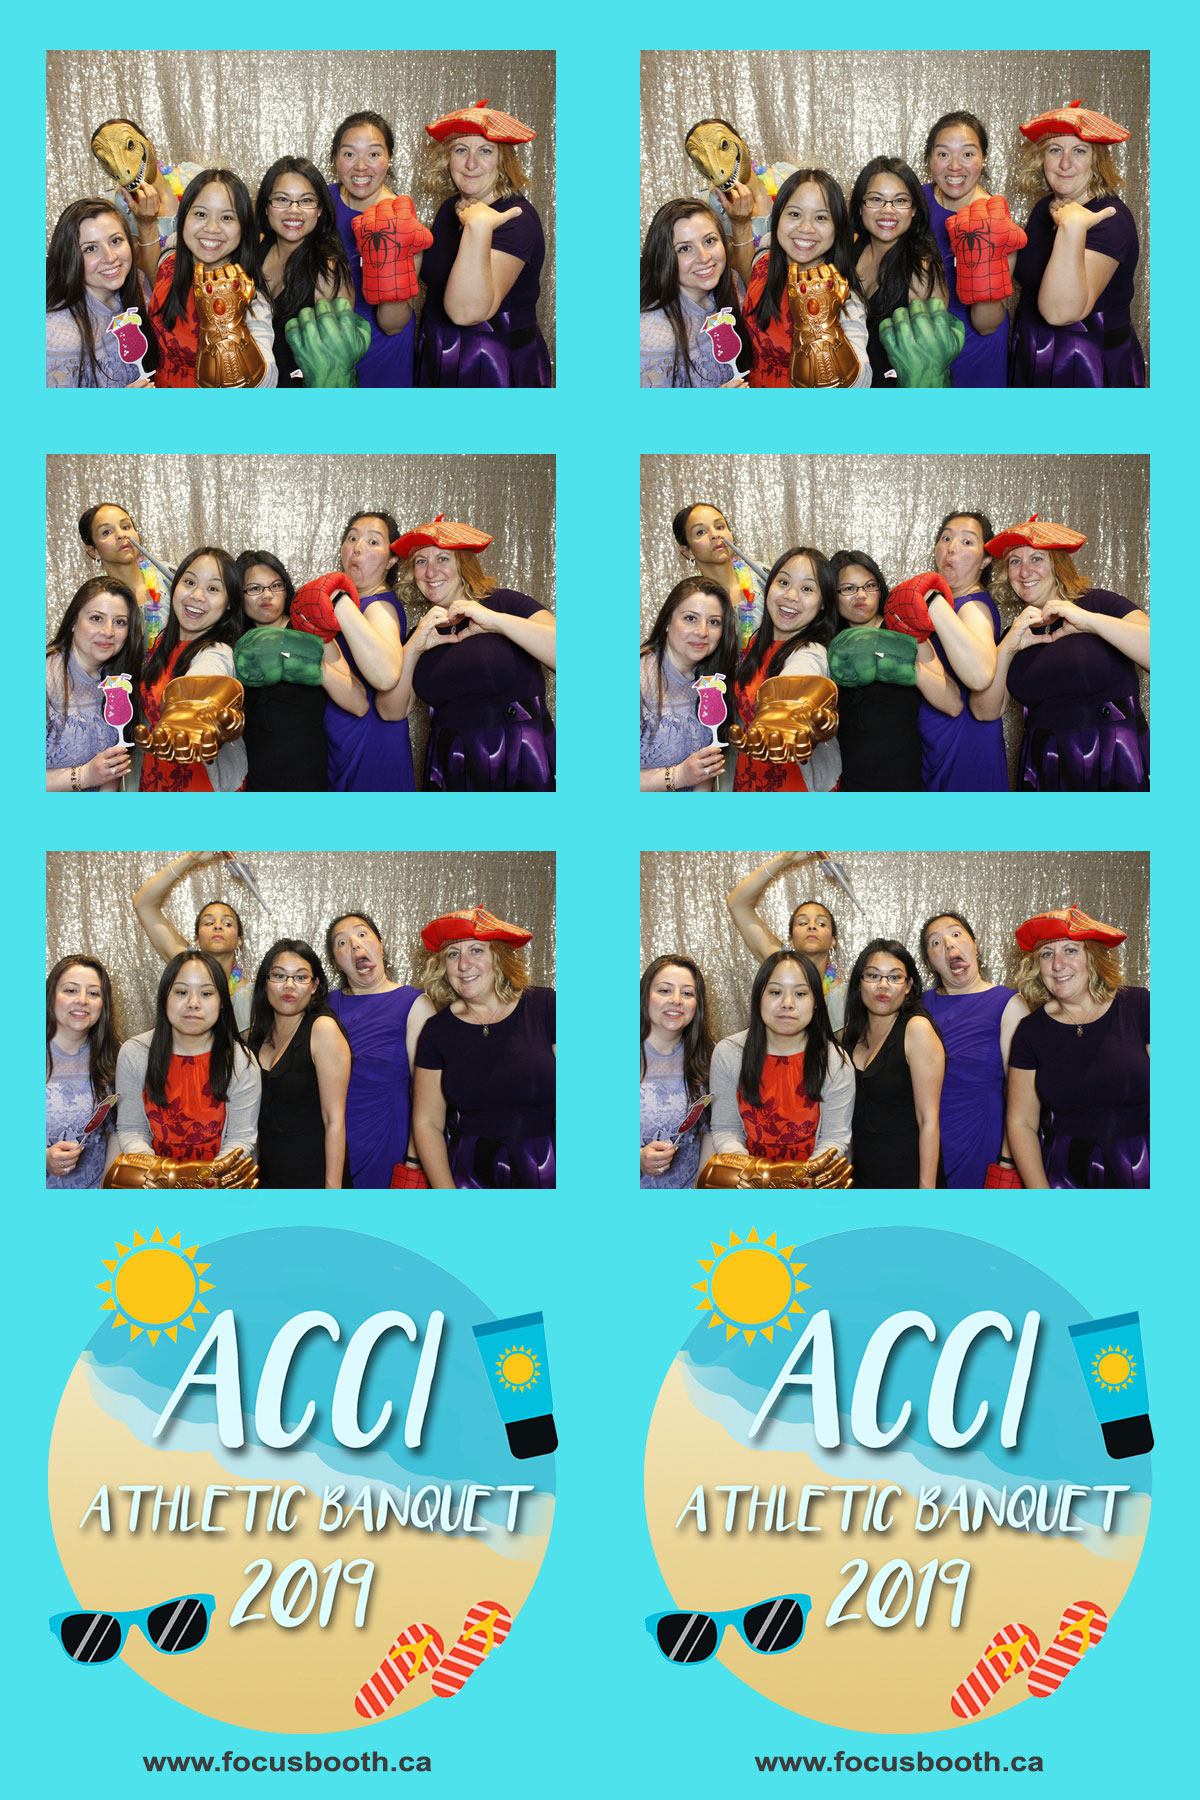 athletic banquet party event photo booth